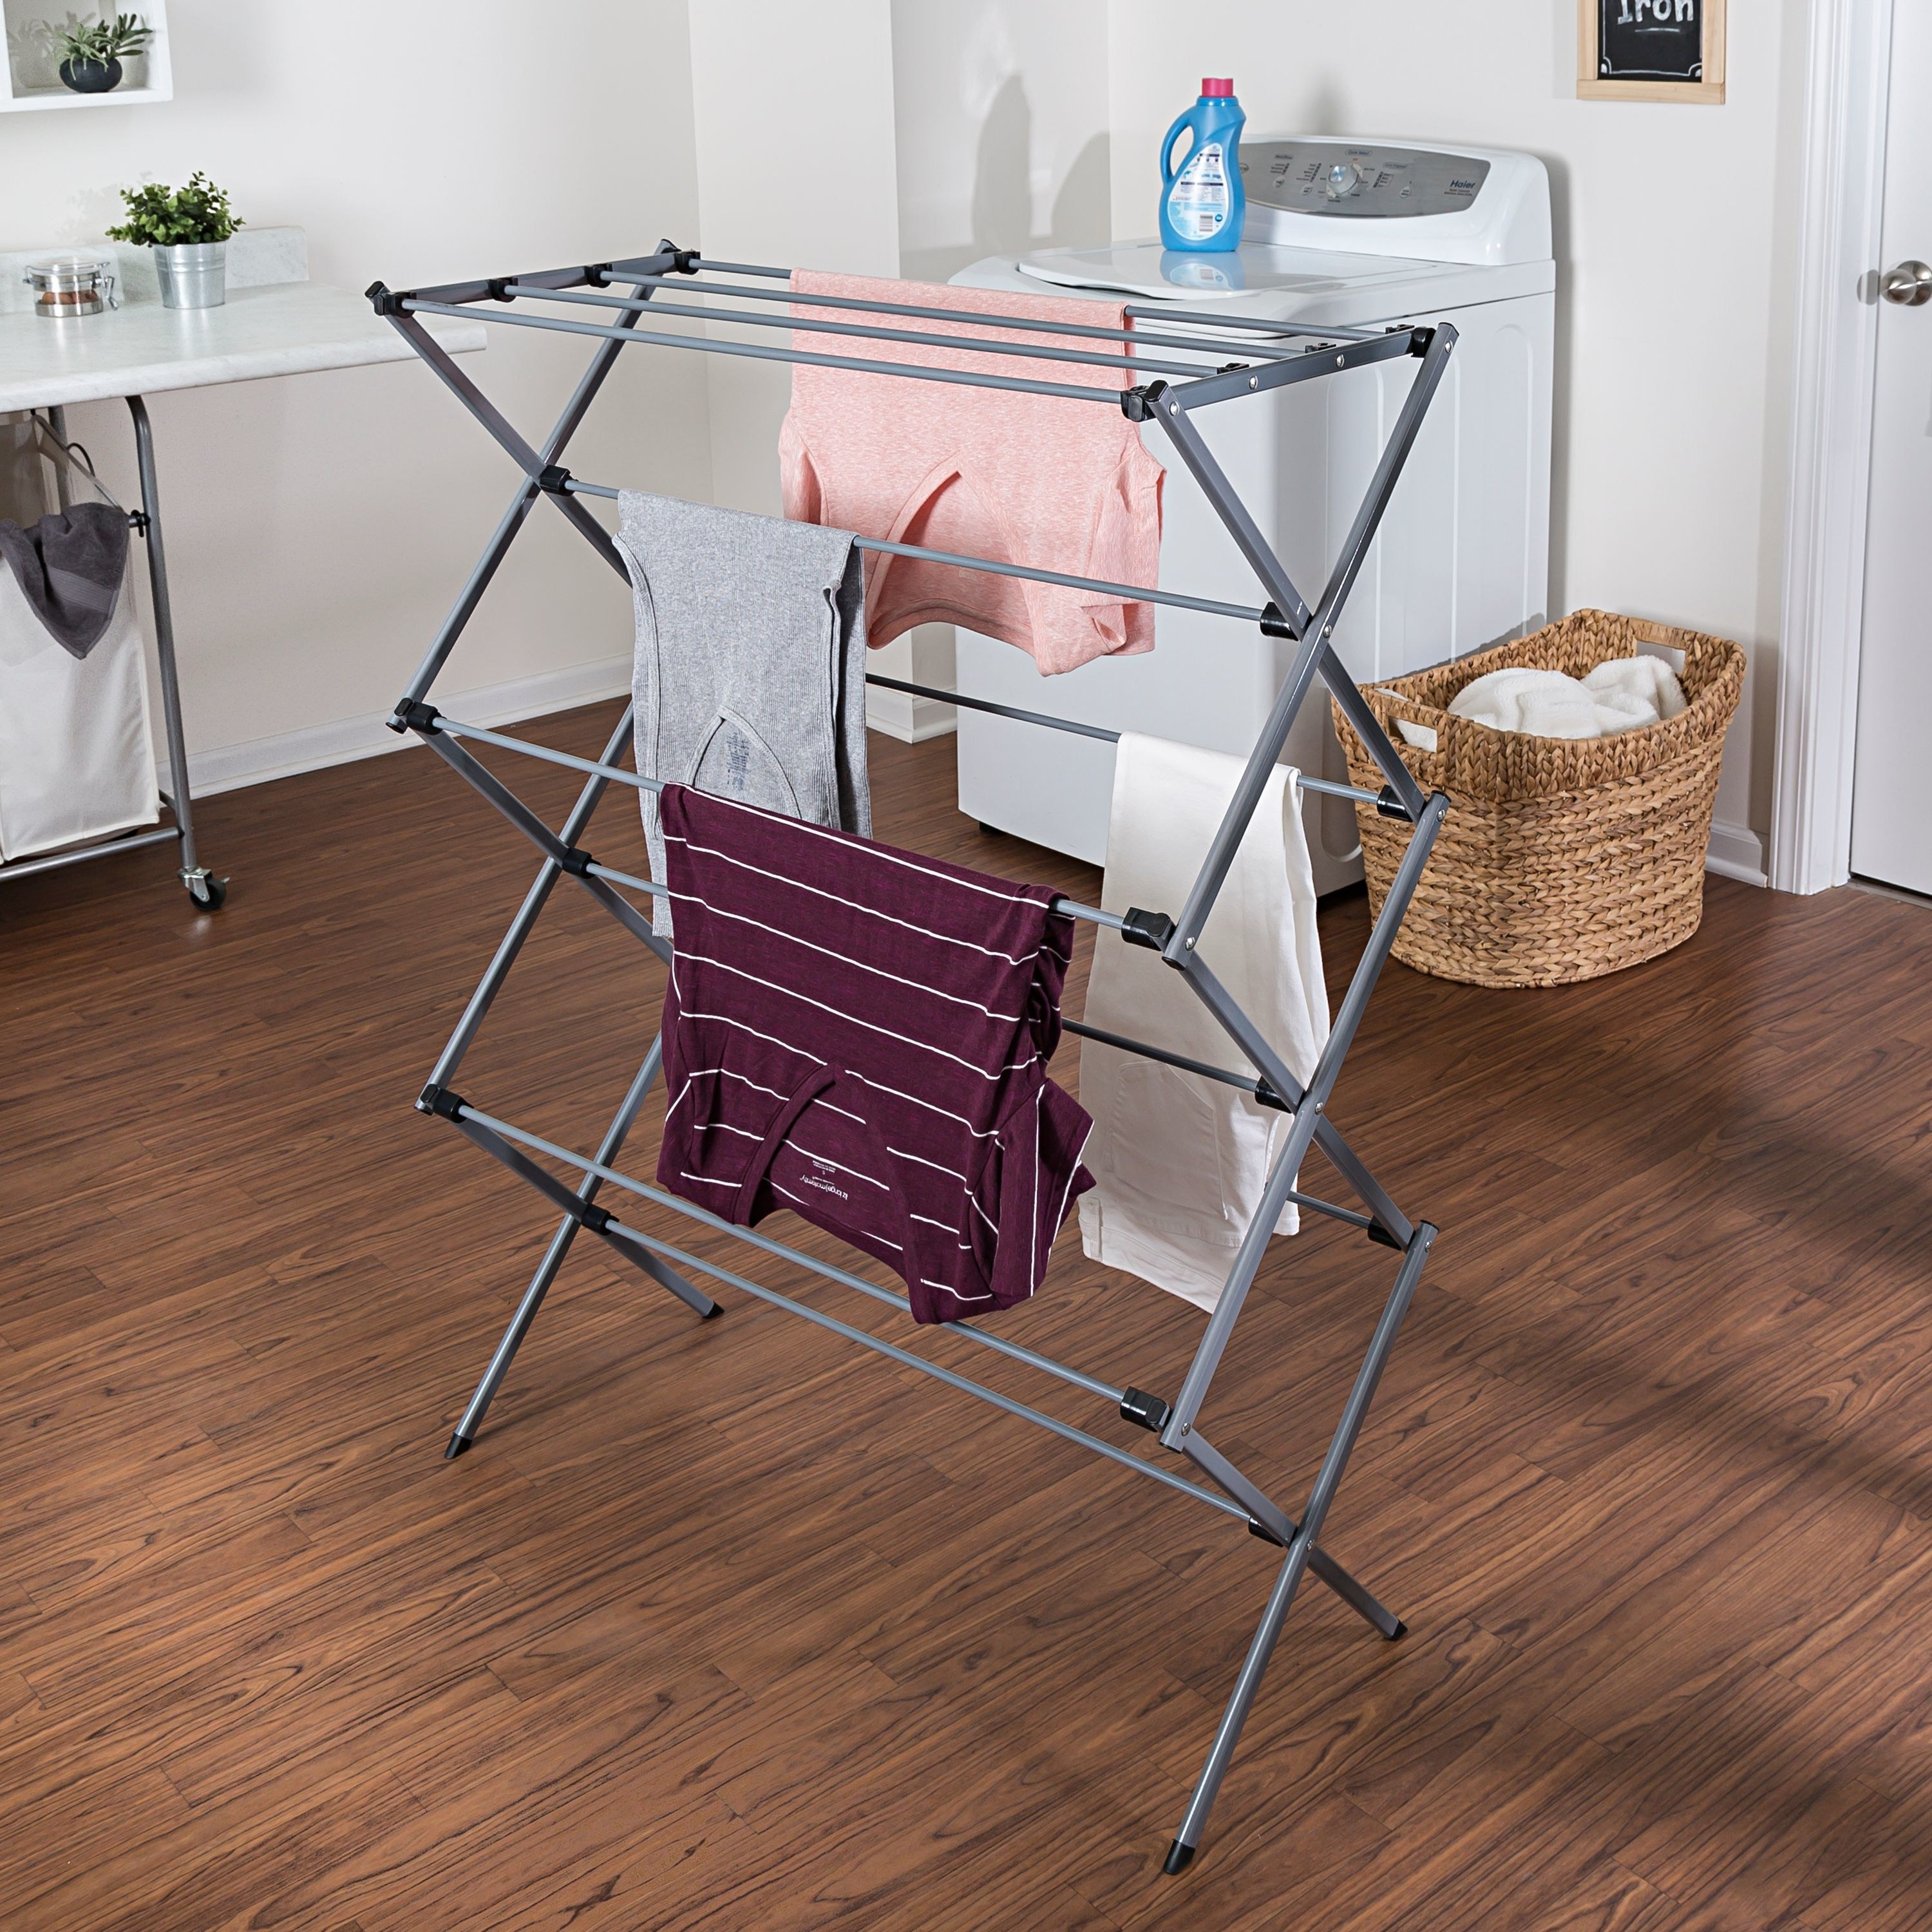 A gray plastic laundry drying rack with clothes on it